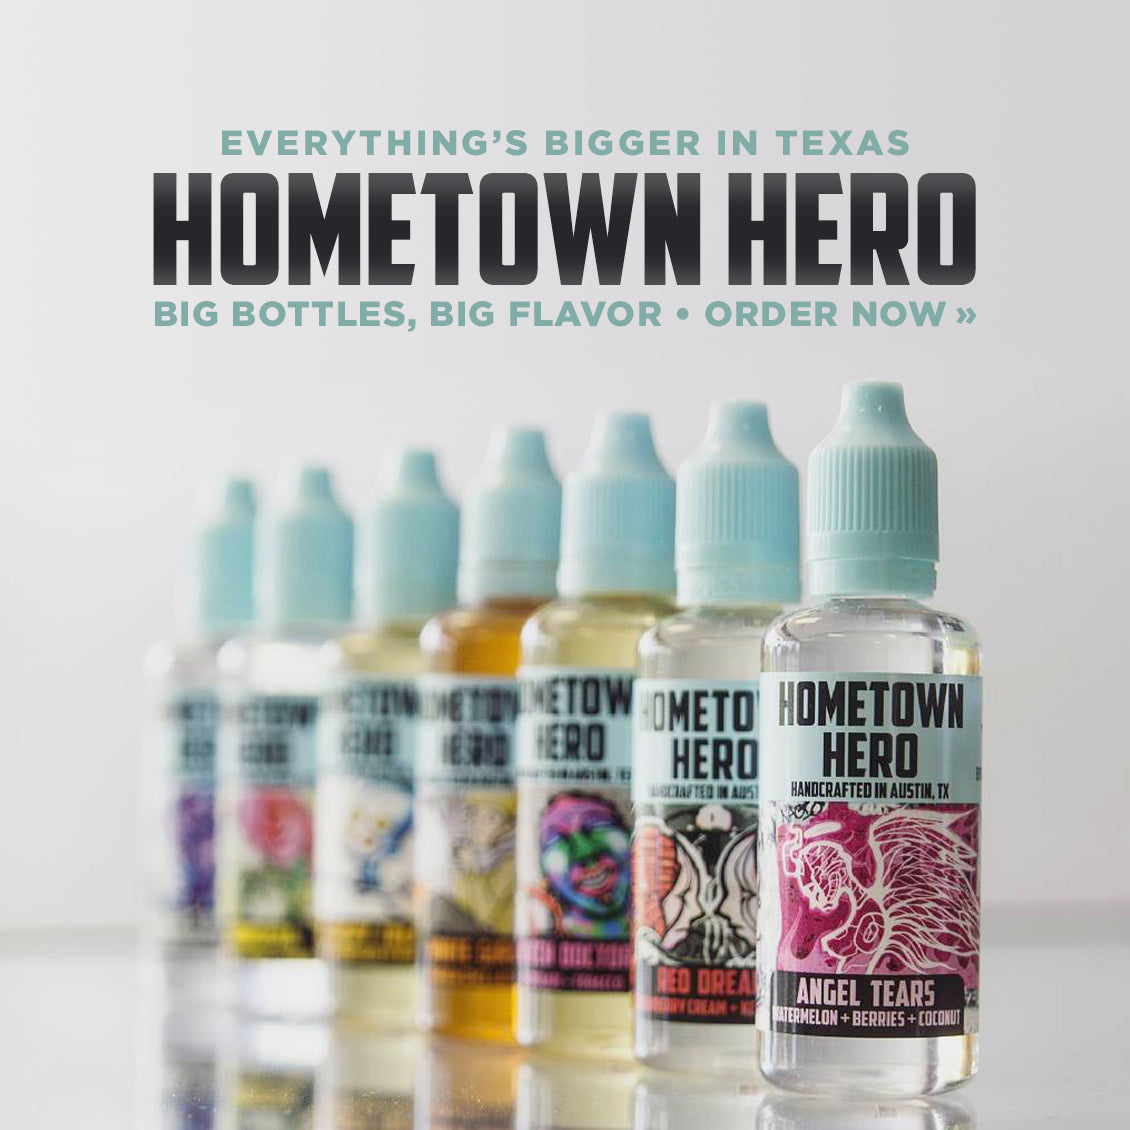 Hometown Hero: Big Bottles, Big Flavor. Order now.